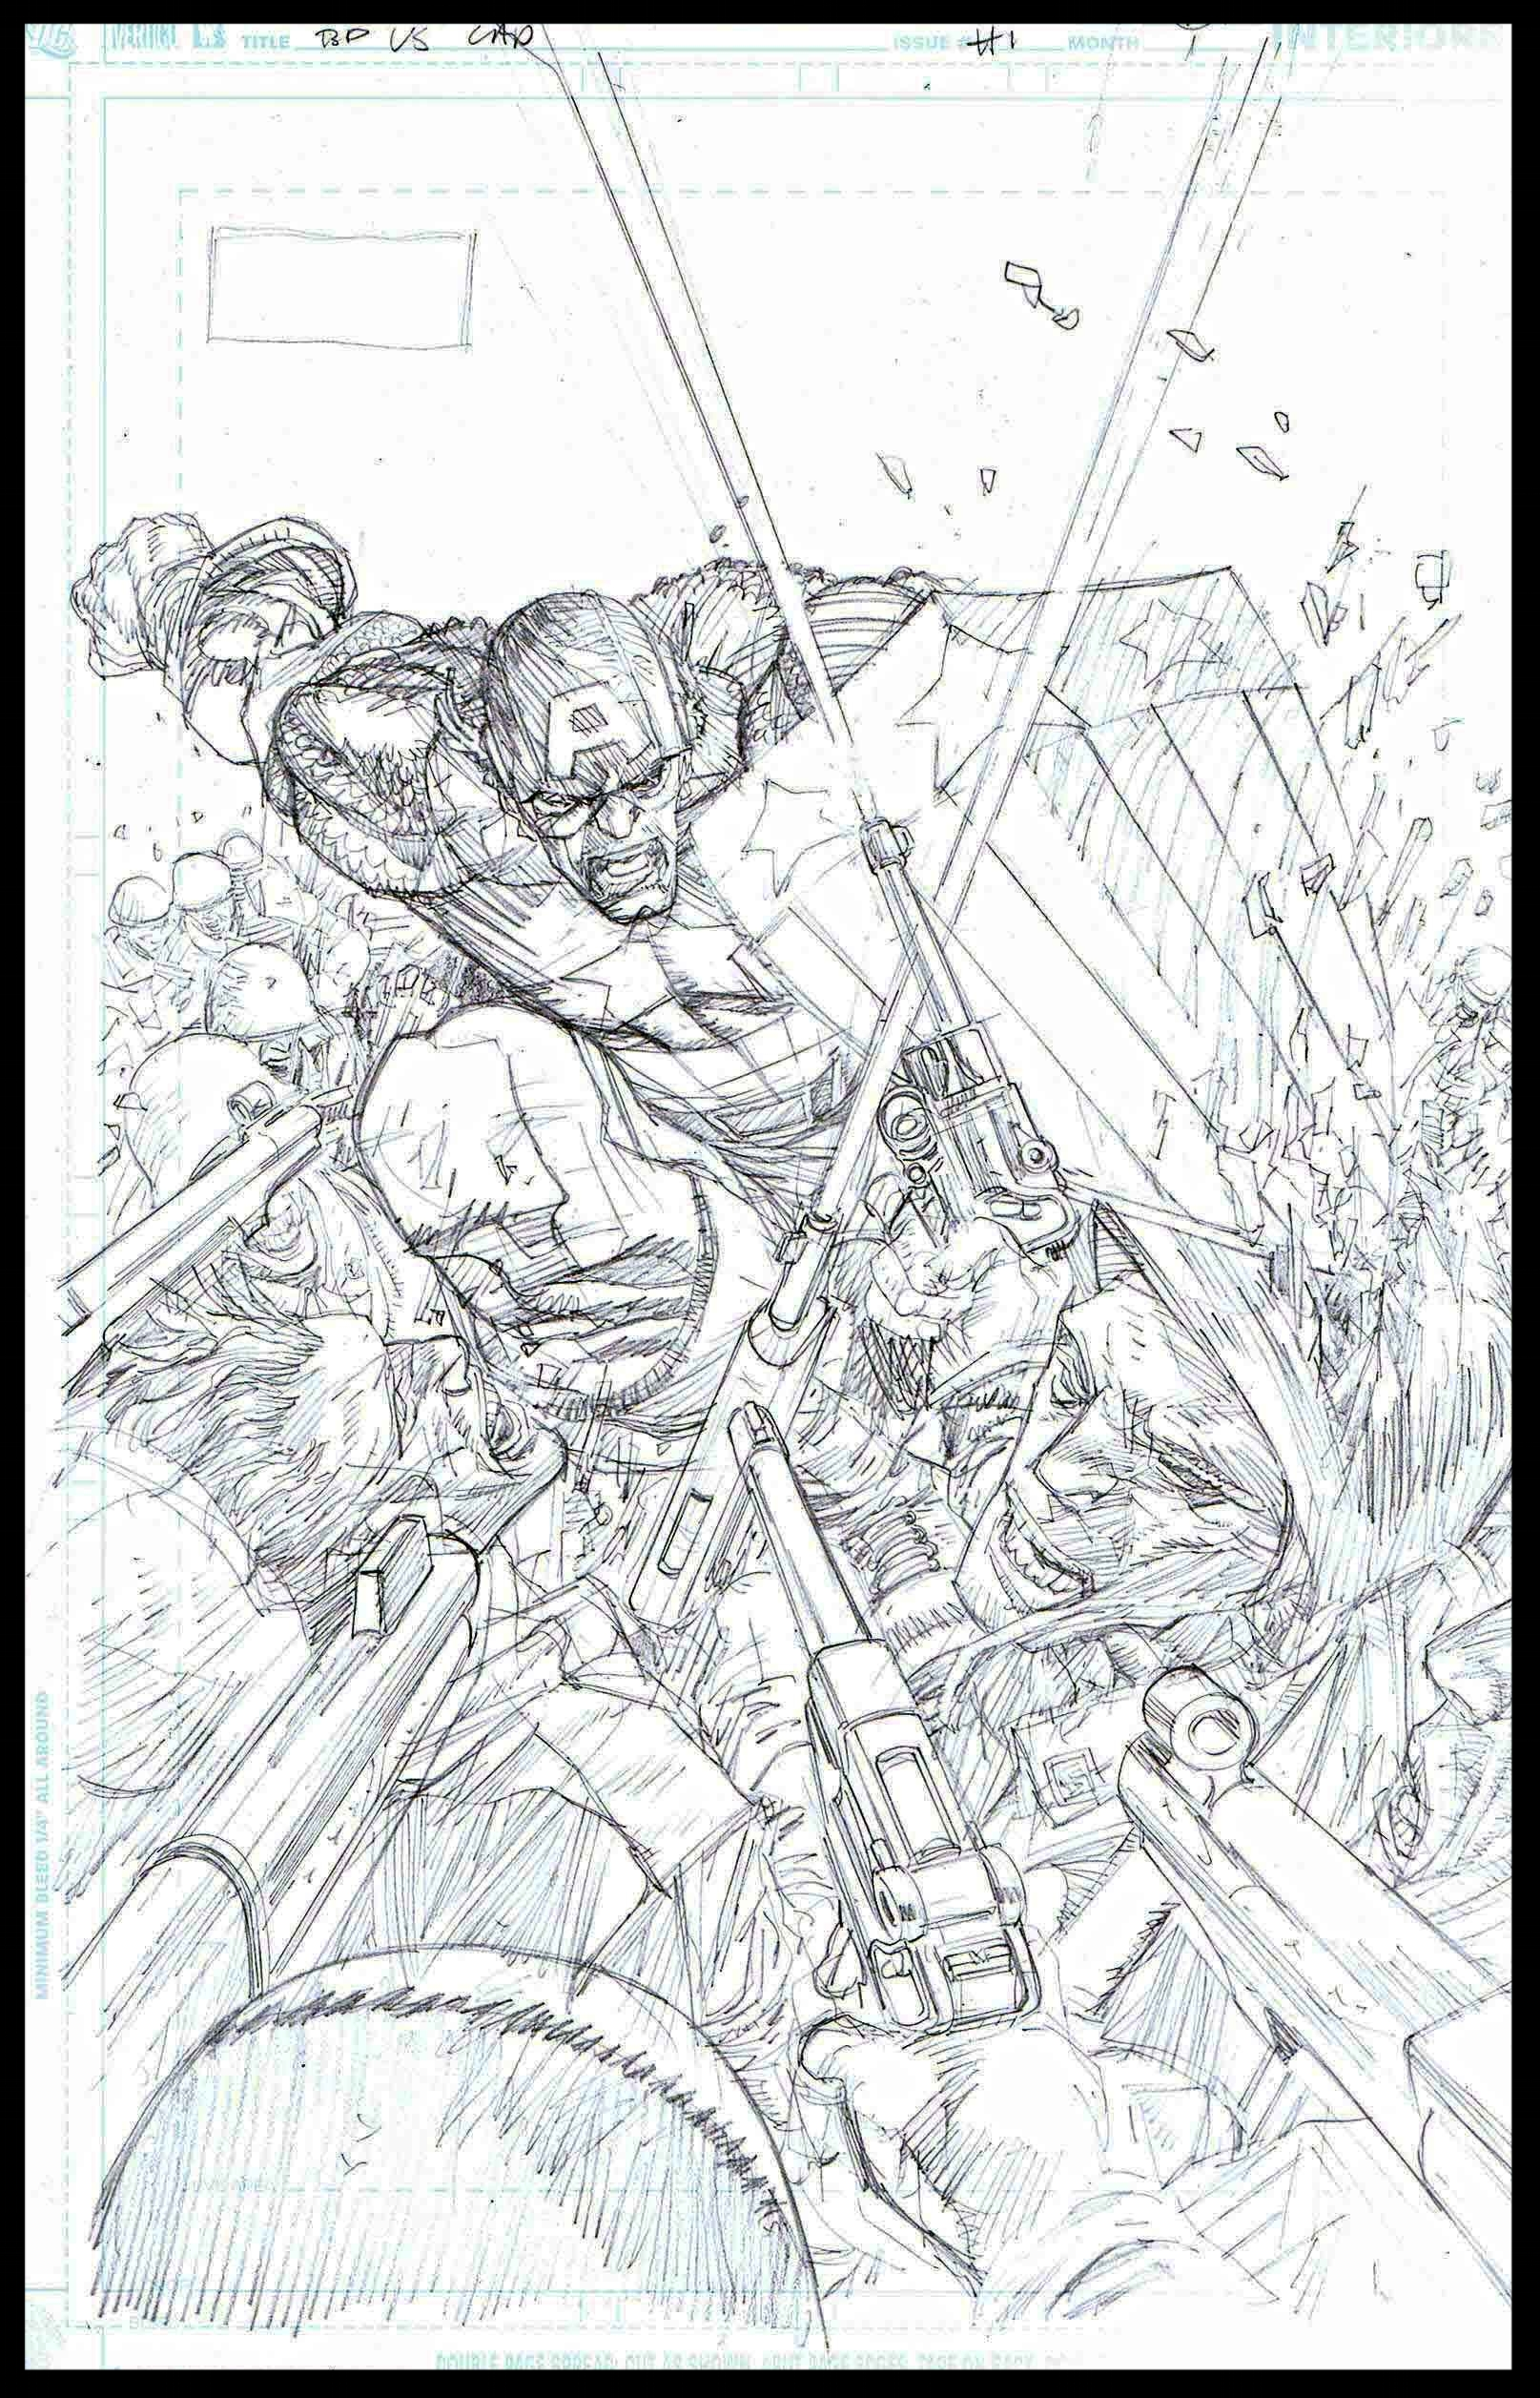 Flags of Our Fathers #1 - Page 6 - Pencils